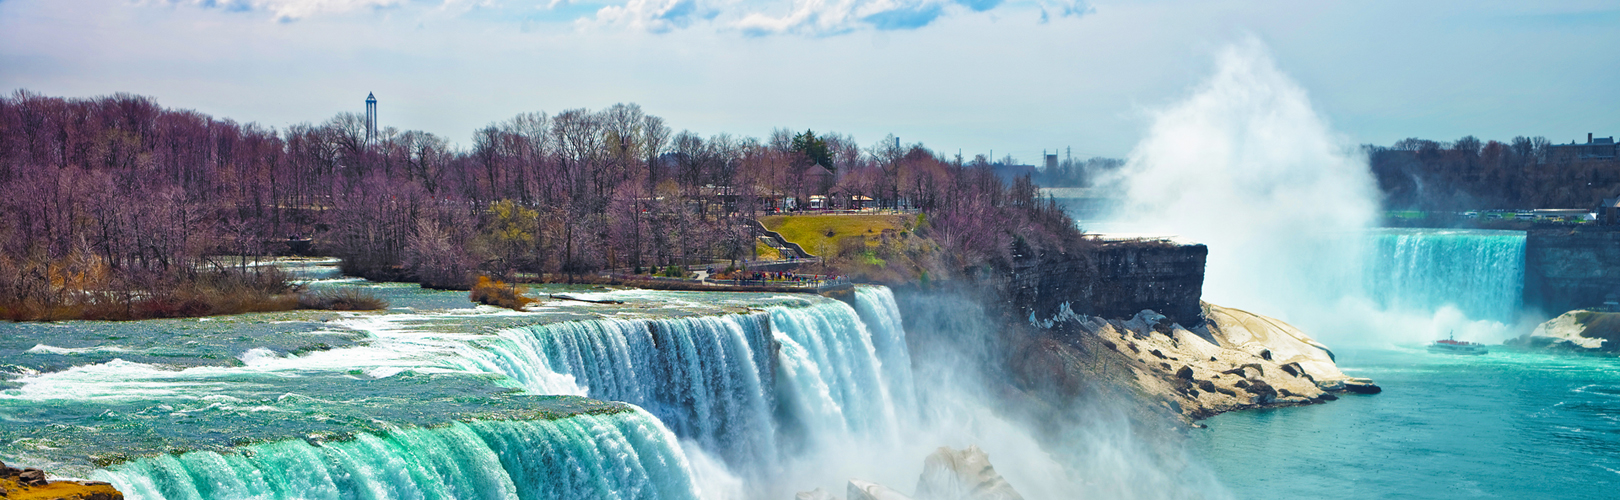 $315 to book your trip NOW to Niagara Falls!